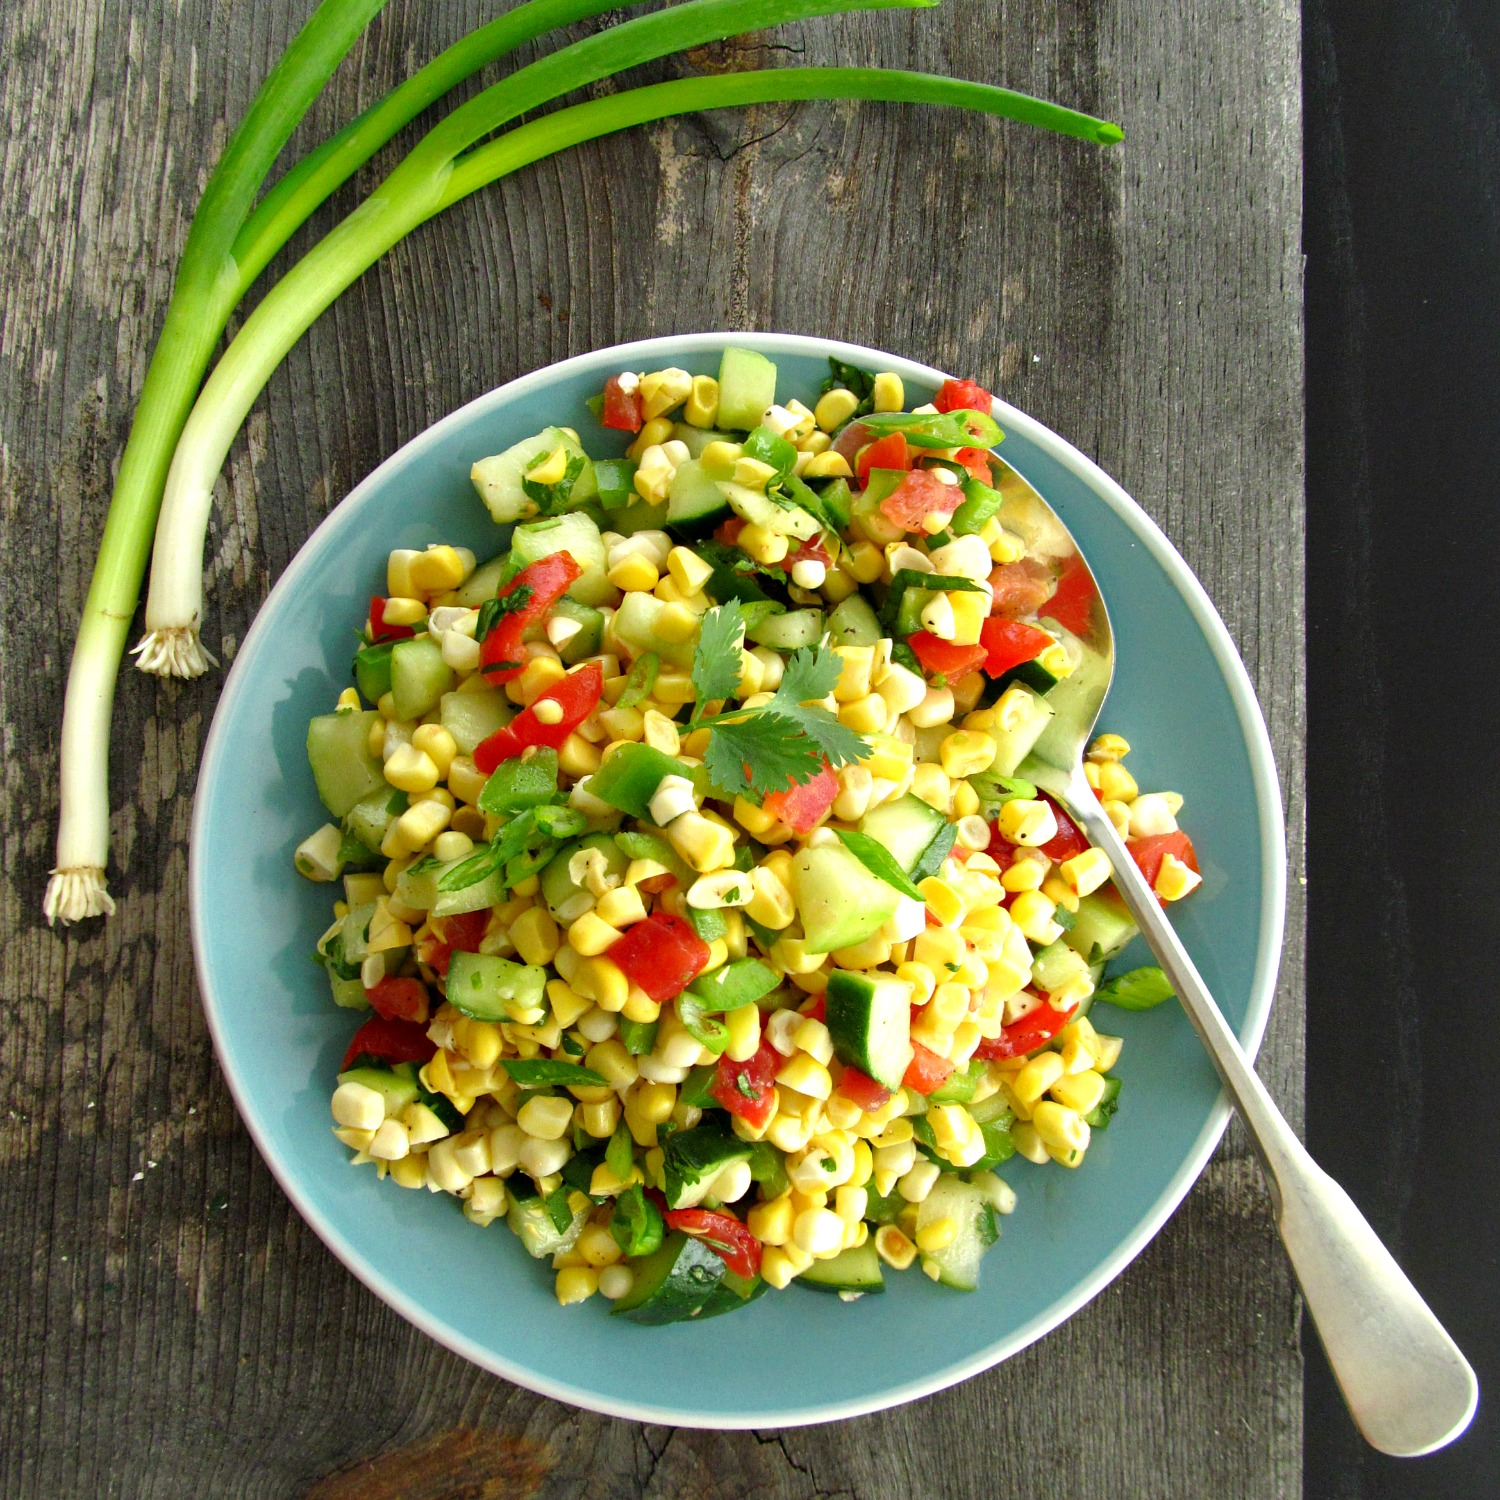 print fresh corn salad ingredients 7 ears fresh corn shucked kernels ...